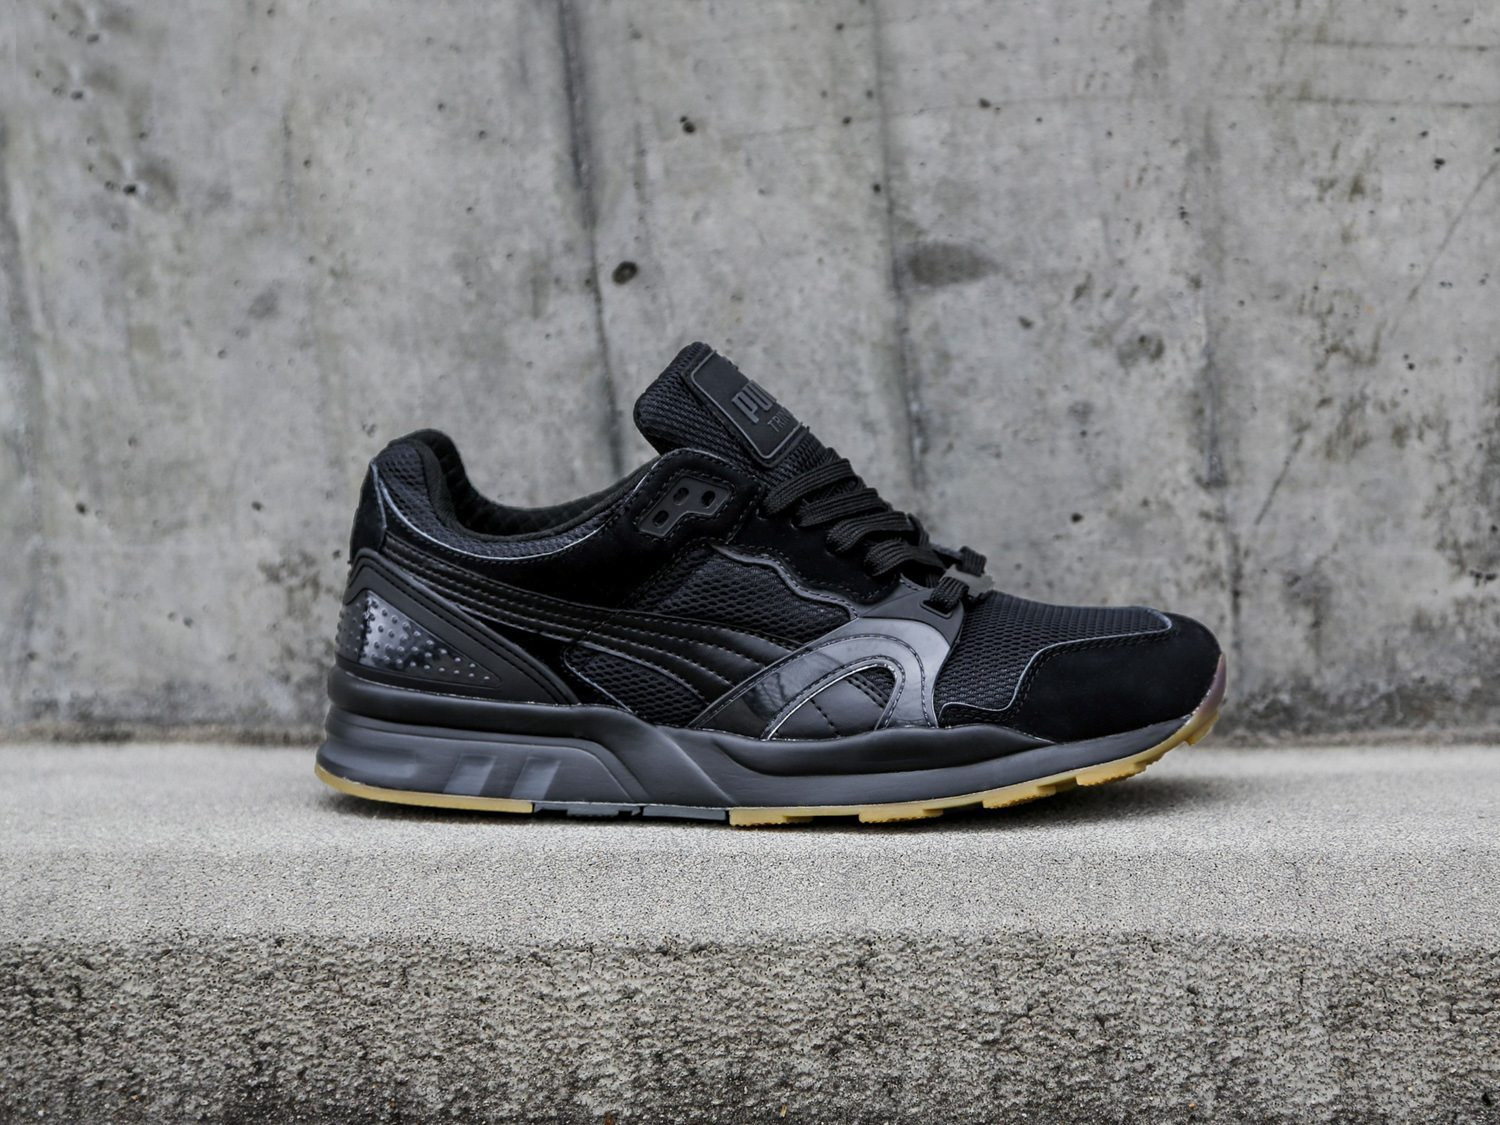 PUMA-Trinomic-Spring-Summer-2015-Black-&-White-Collection-11